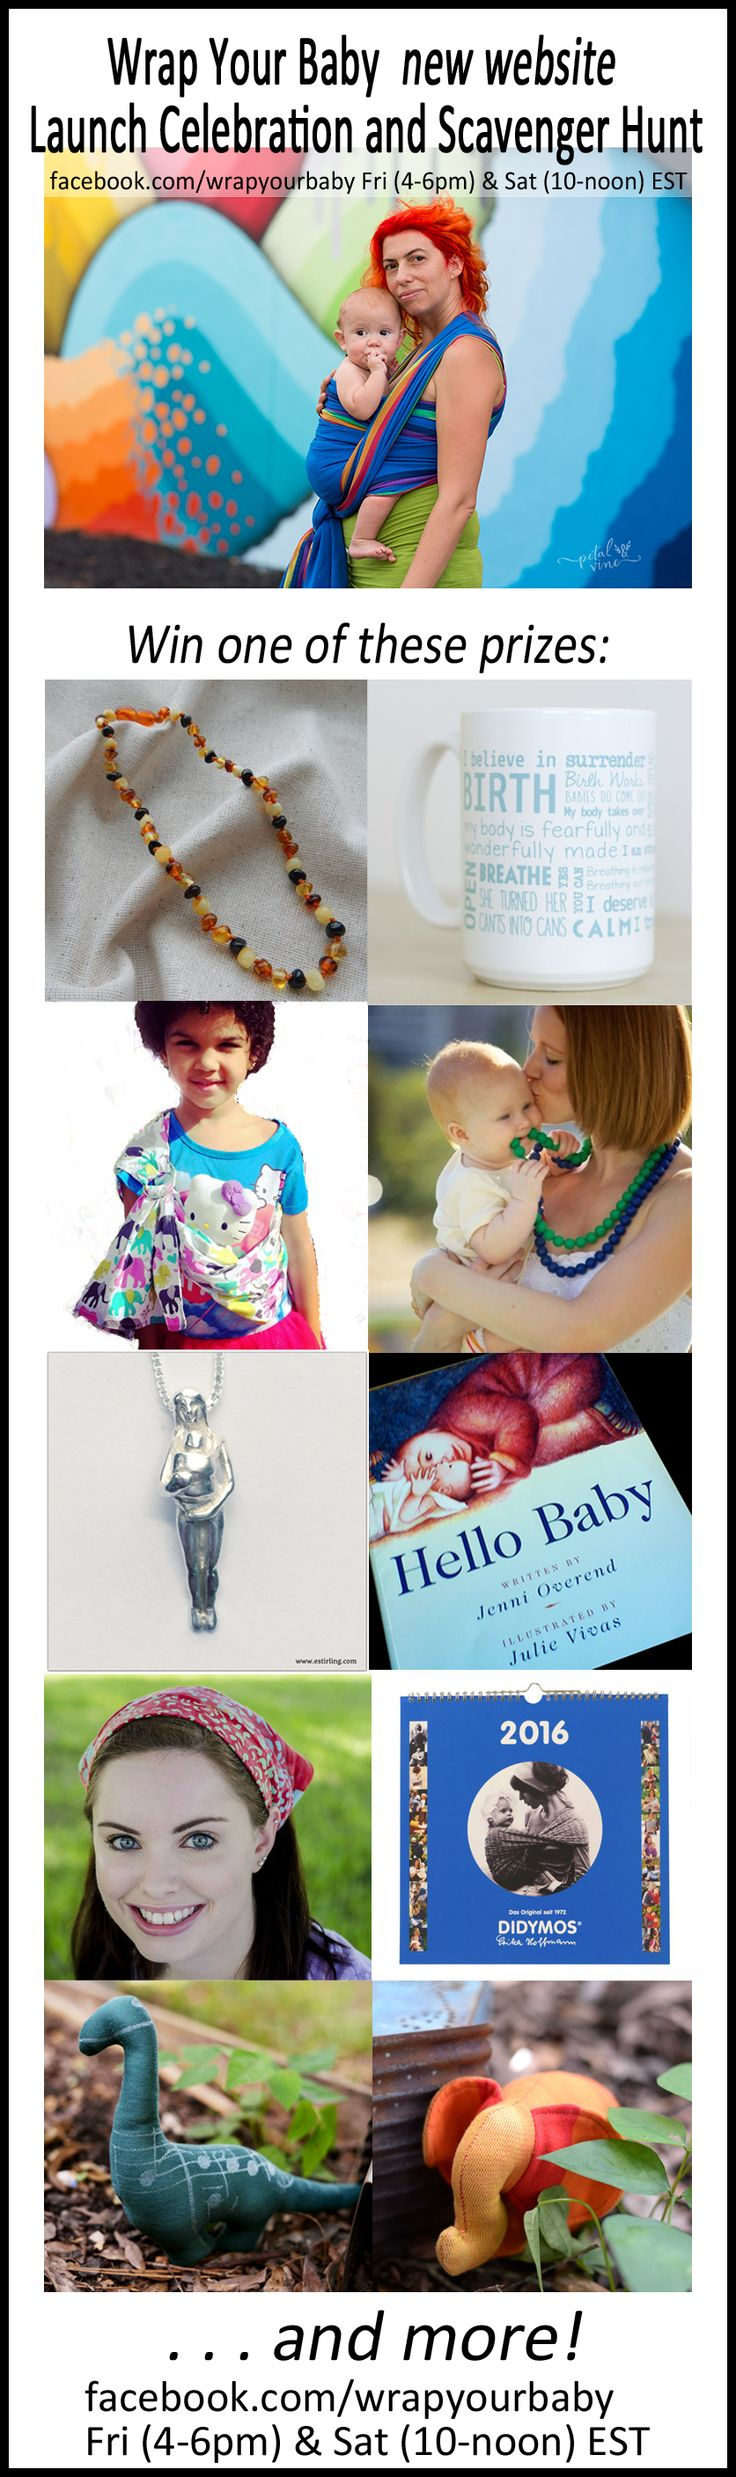 Fri, 8 July 4-6pm EST & Sat, 9 July 10-noon EST on Wrap Your Baby's Facebook page.  Prize descriptions: Baltic Amber Teething Necklace from Barti Boutique, Birth Affirmations Mug from Heart 2 Heart, child doll sling from the Barbour Shop, Jane Chewbeads, Sterling Silver Babywearing Mom Pendant from E Stirling Designs, Hello Baby homebirth book for children, Wrapsody Haumea Head Scarf, Didymos Babywearing Calendar, wrap scrap dinosaur and elephant . . . and there will be more prizes, too!